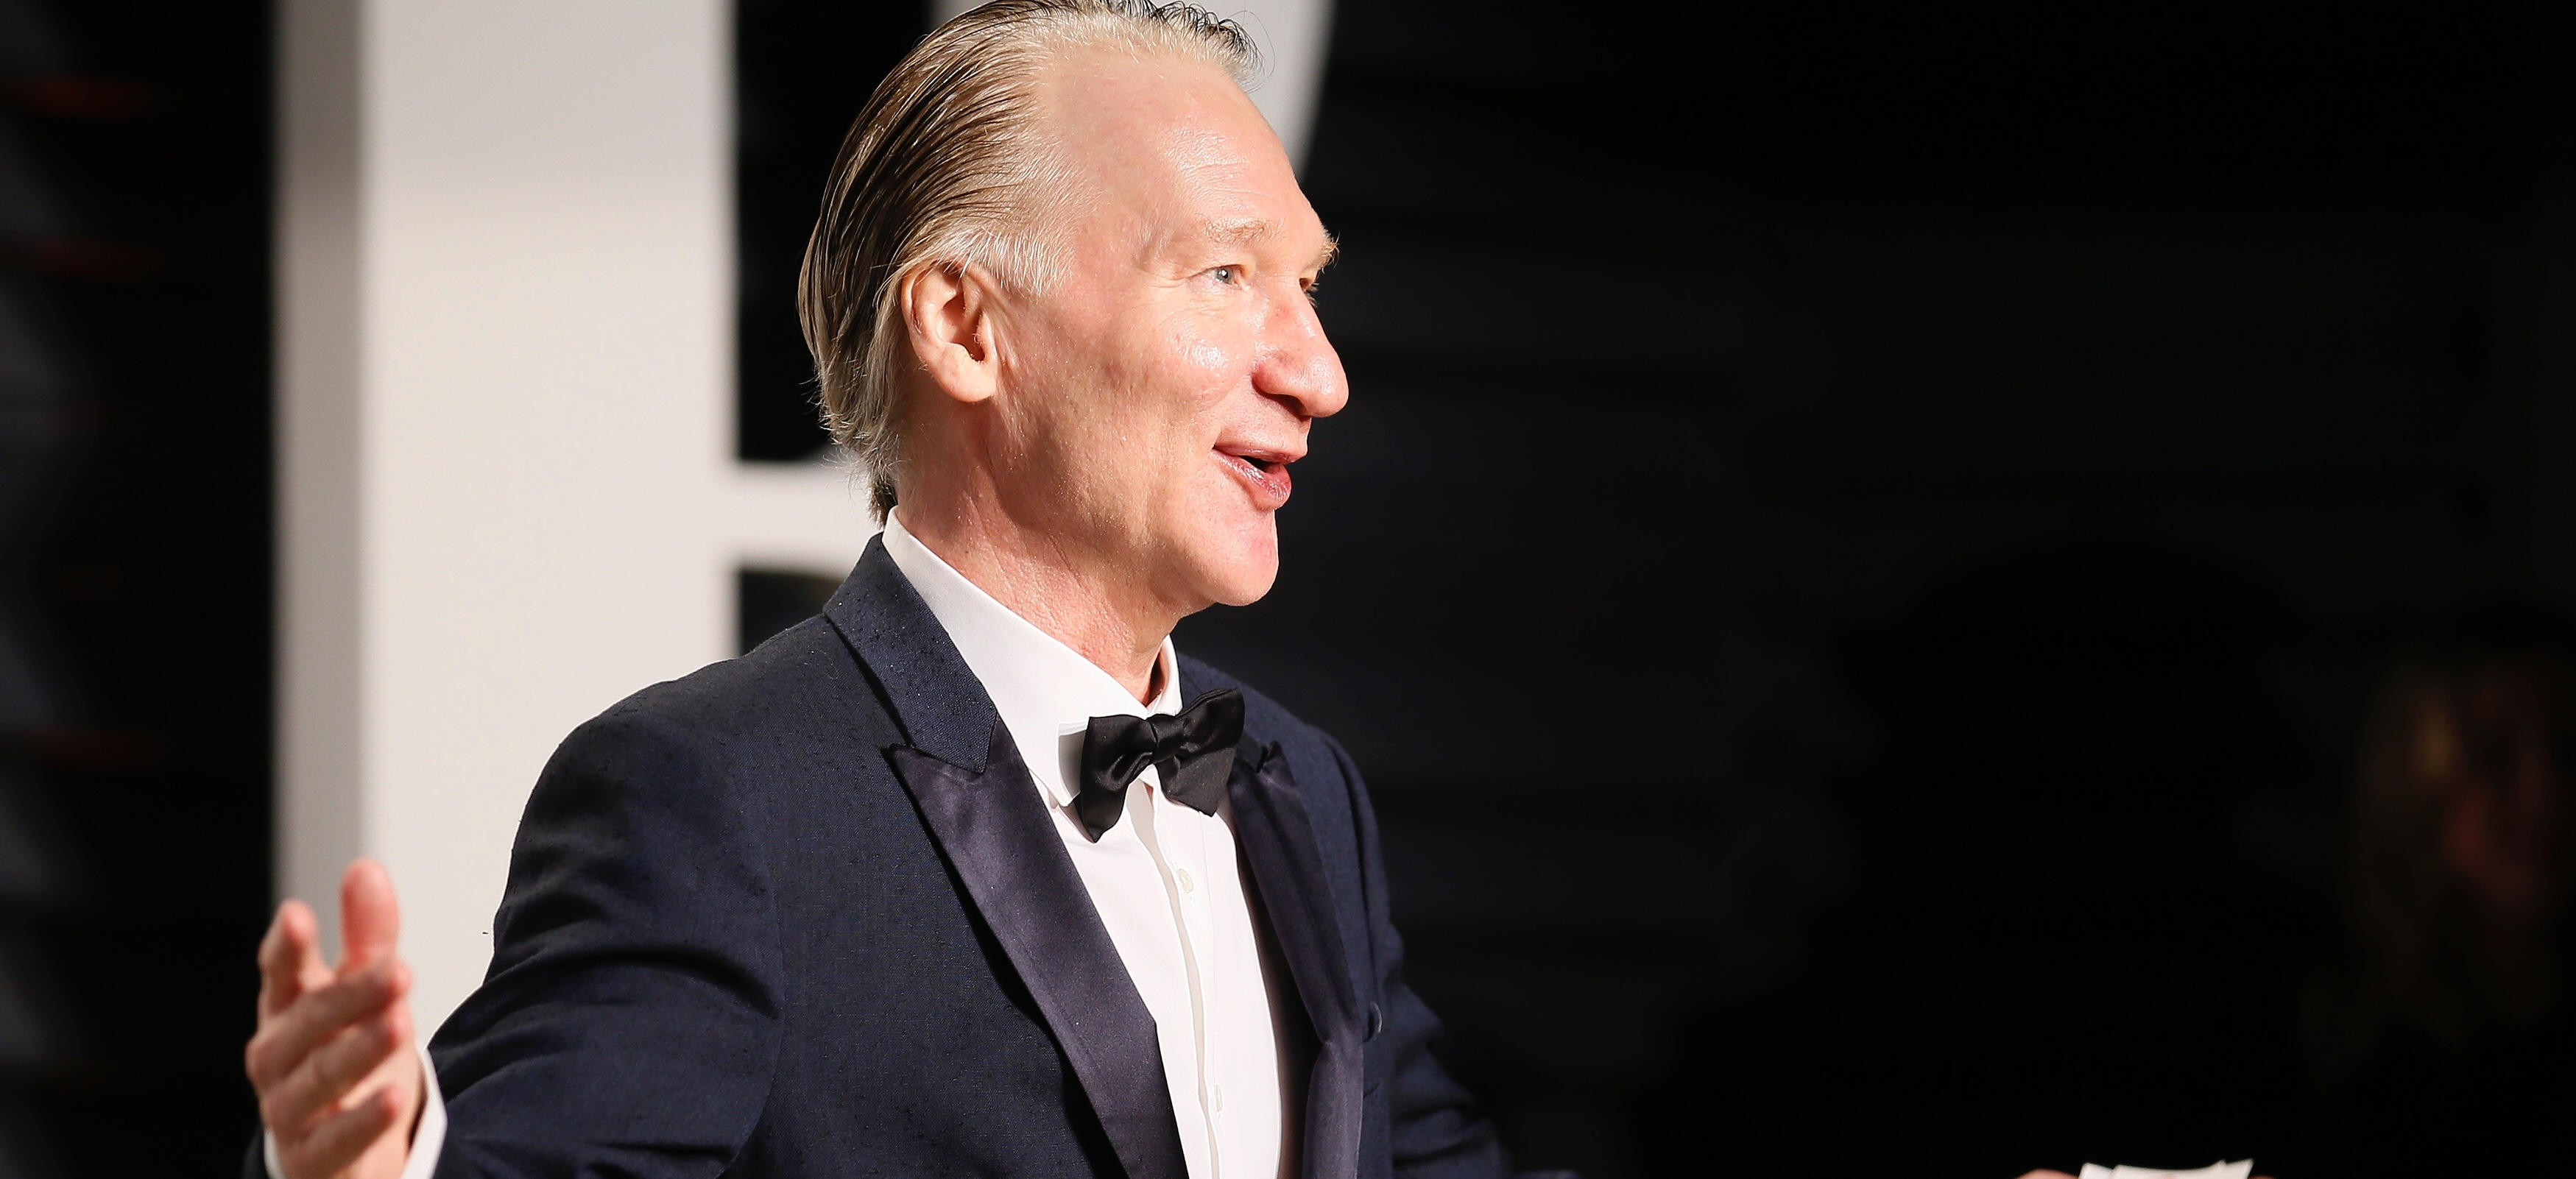 89th Academy Awards - Oscars Vanity Fair Party - Beverly Hills, California, U.S. - 26/02/17 ñ Comedian Bill Maher. REUTERS/Danny Moloshok